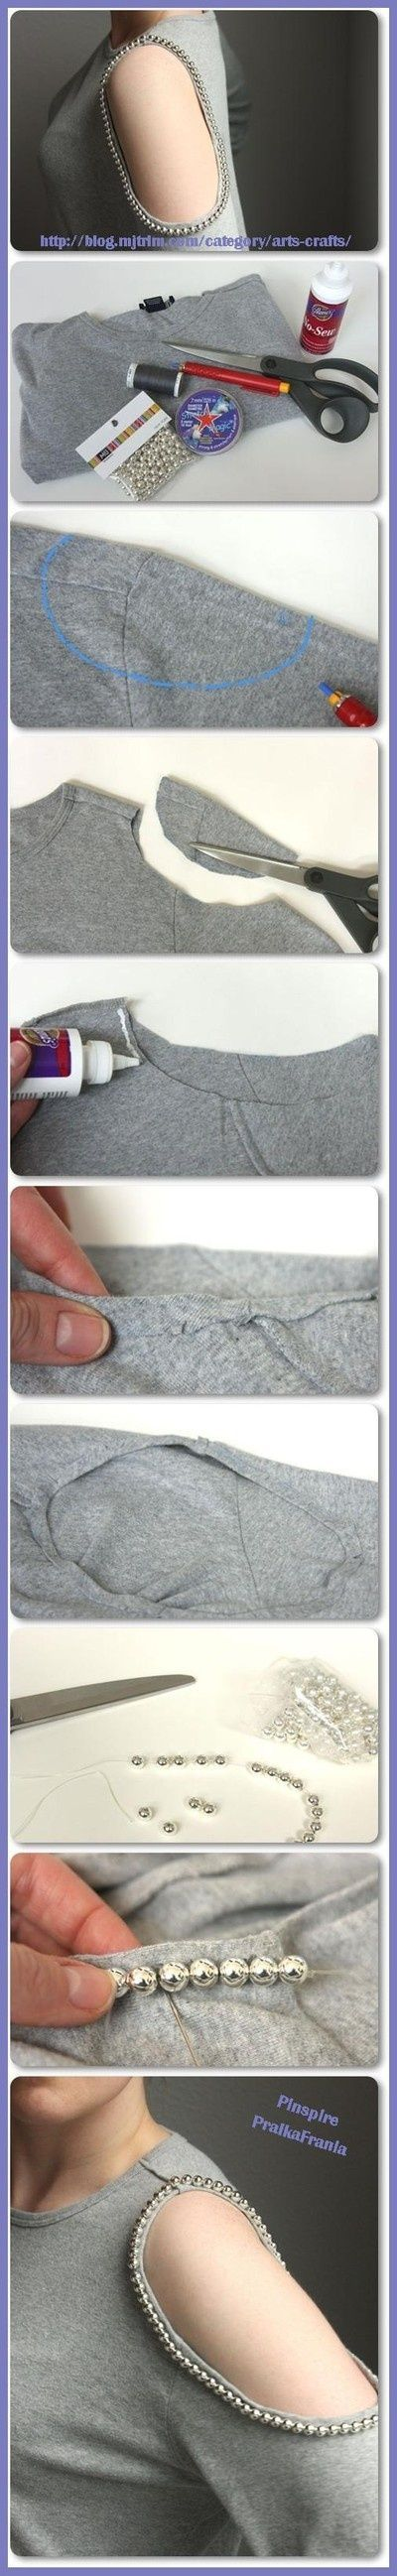 Diy customisation d'un tee-shirt